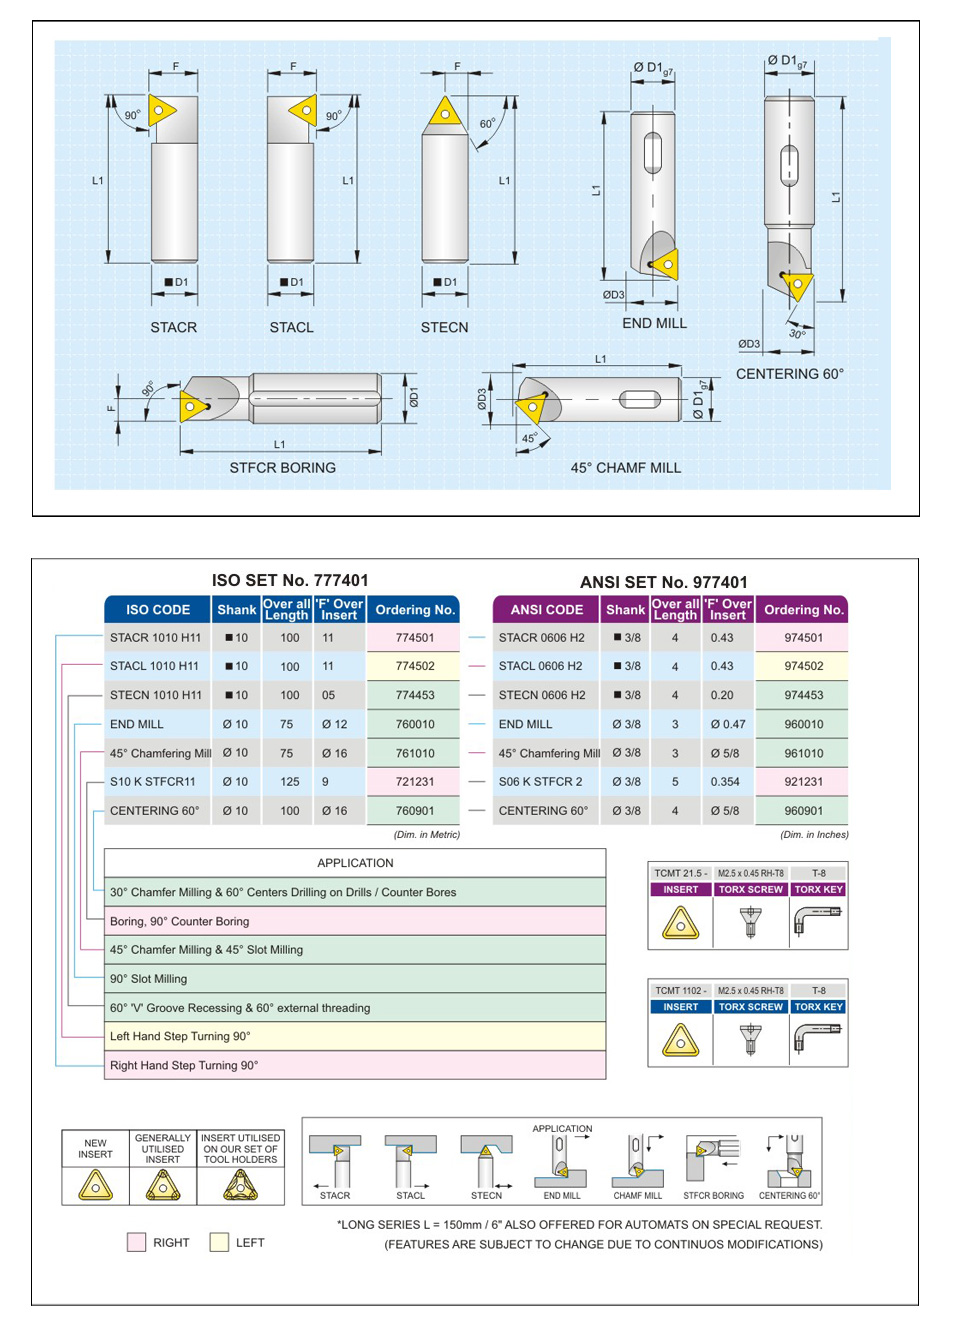 'Glanze - Industrial Tools Manufacturers India' from the web at 'http://www.glanze.com/indexable-tool-holders/../products/milling-cutters/mc-mini-turning--tcmt(set-of-7.jpg'